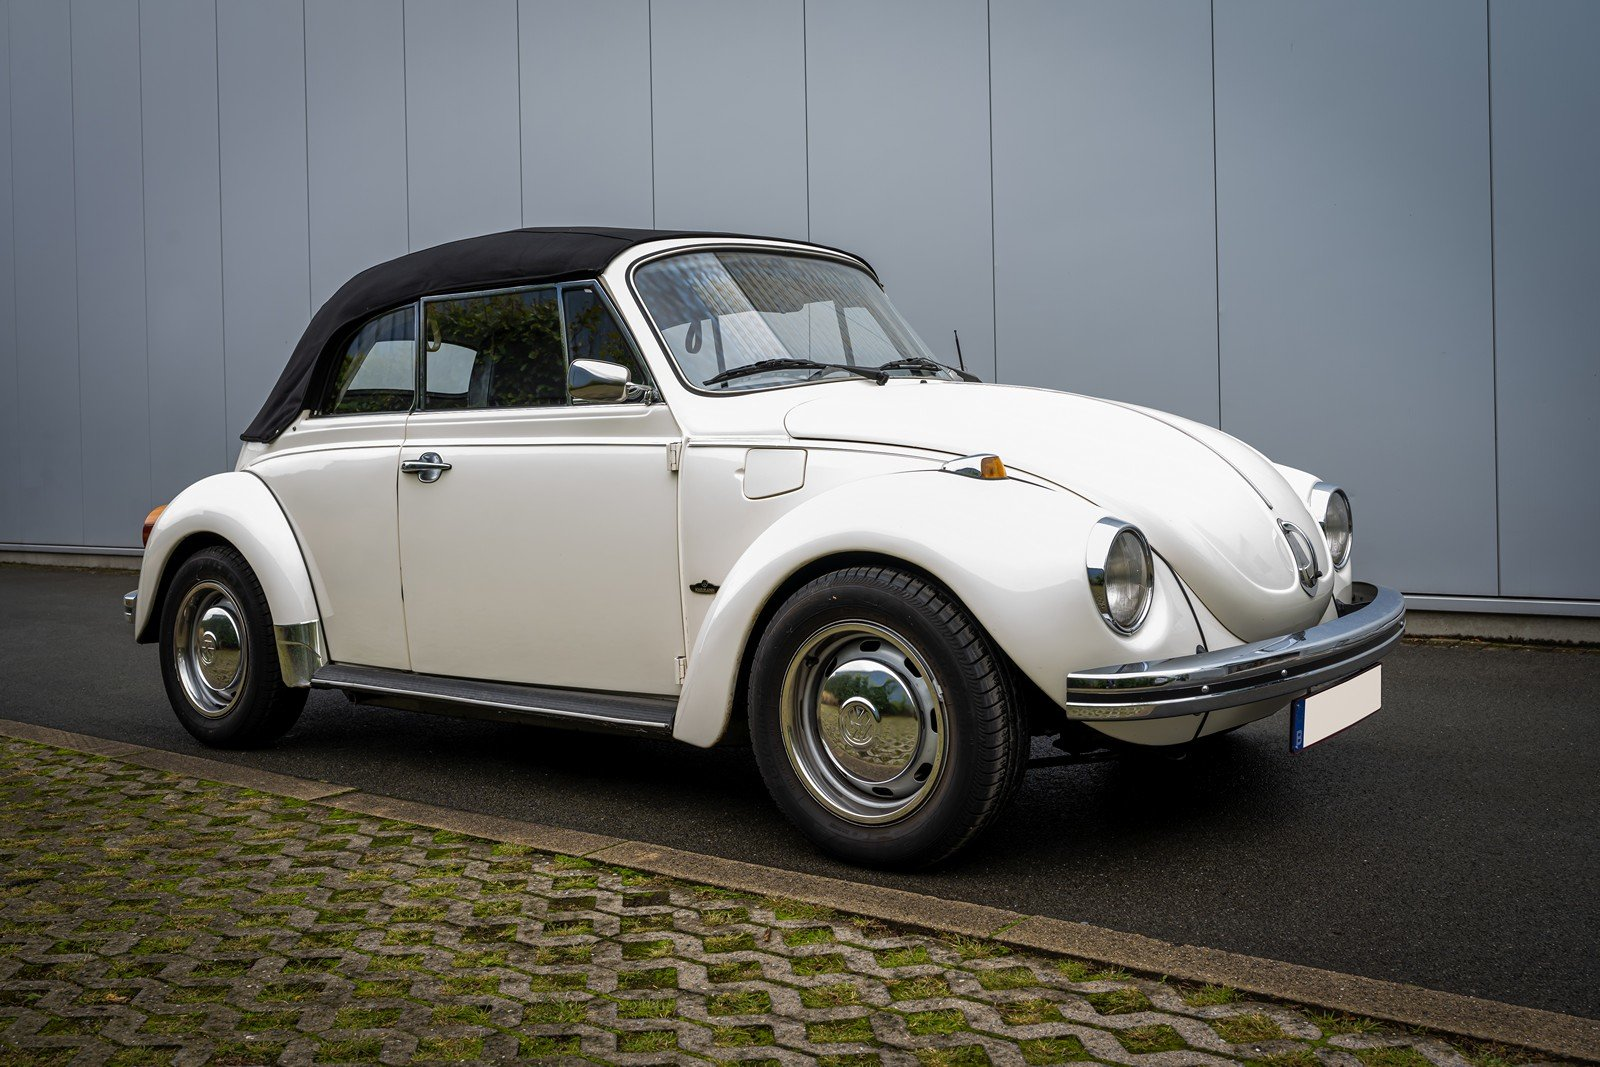 1973 Volkswagen Beetle Type 1303 Cabriolet For Sale (picture 3 of 39)